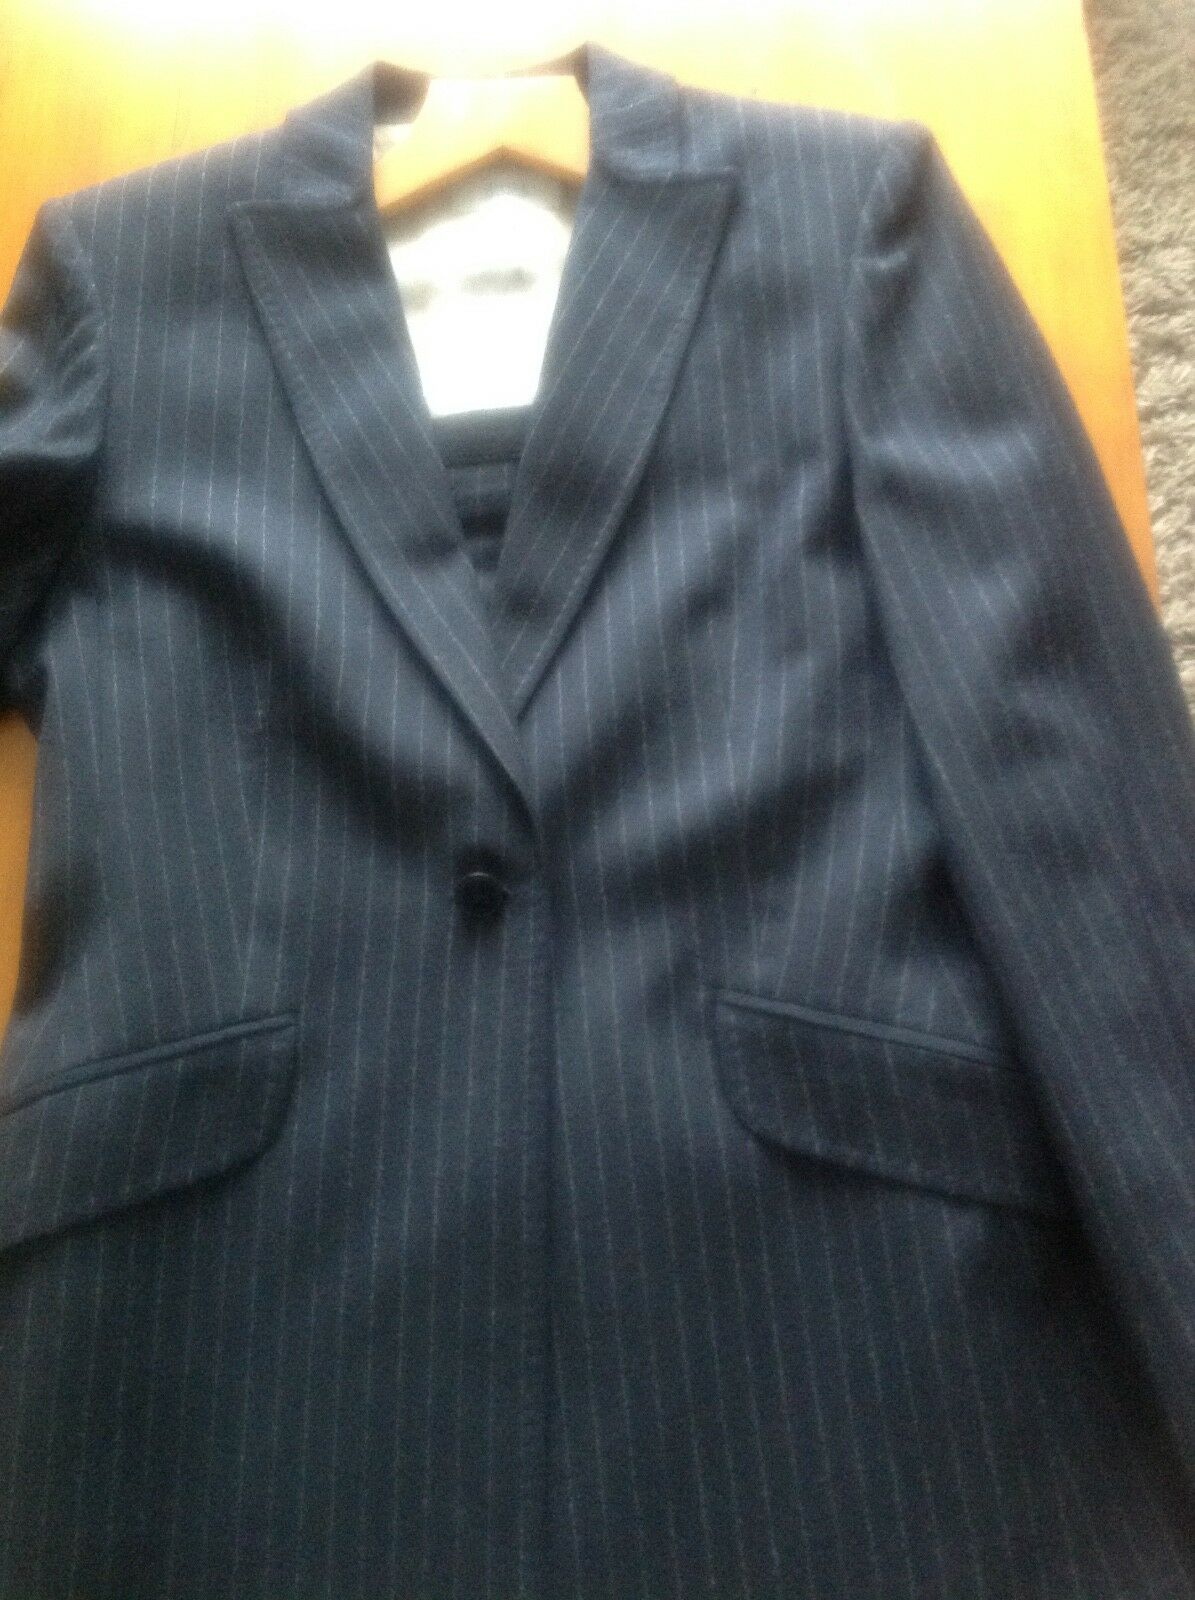 Marks and spencer ladies navy pinstripe skirt suit size 10